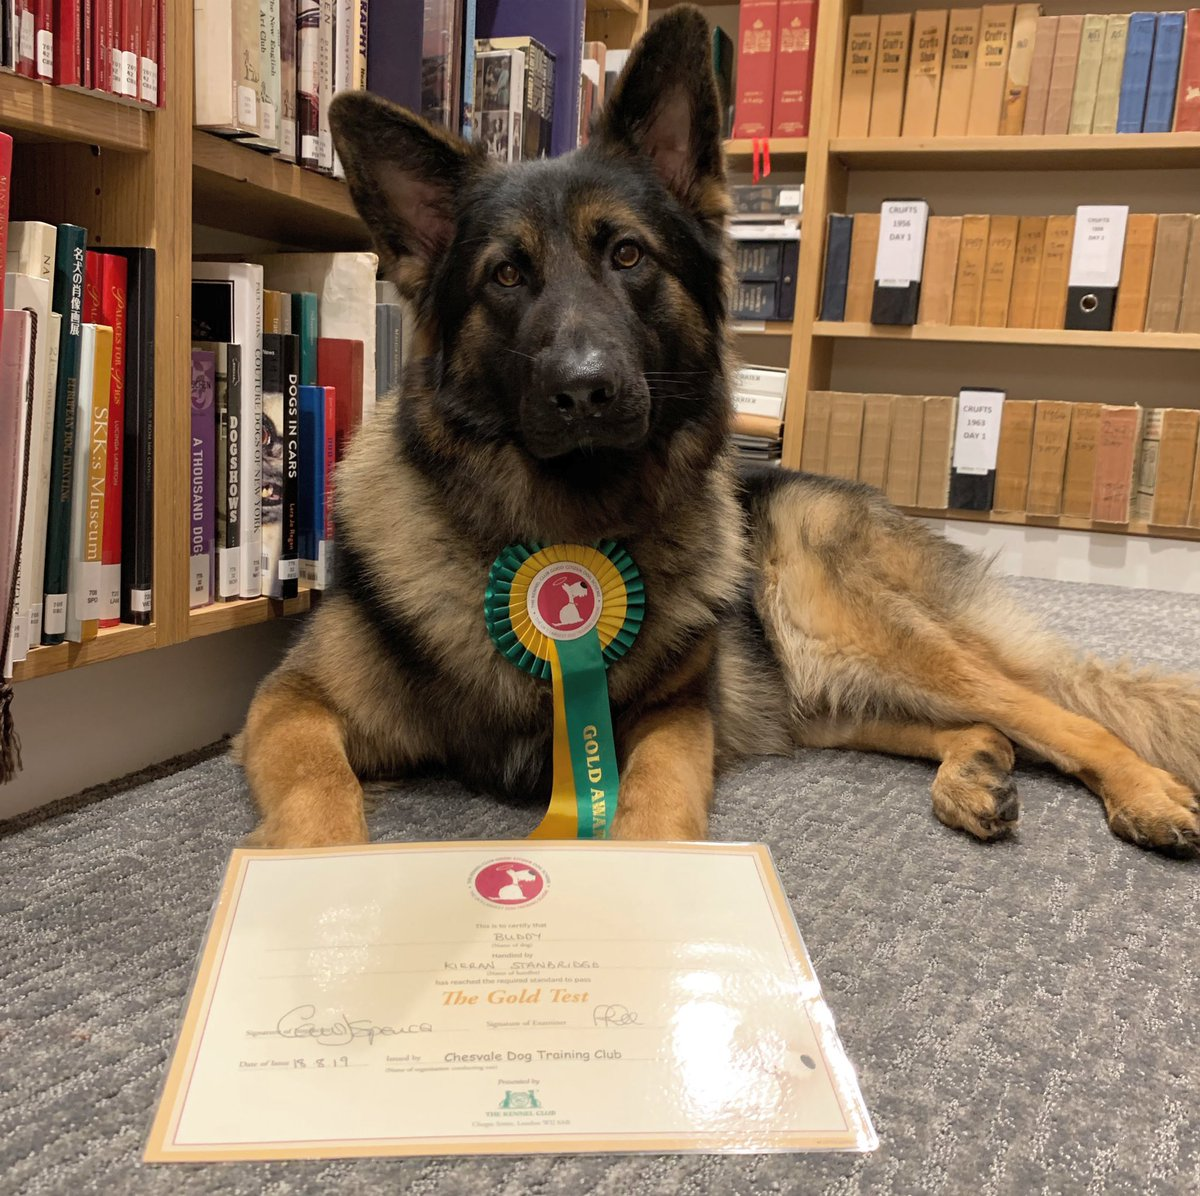 Congratulations to our very own office dog Buddy who has passed his GOLD @thekennelclubuk Good Citizen exam at only 18 months old, we're very proud of you! #officedog #GermanShepherd #KennelClubGoodCitizen<br>http://pic.twitter.com/SggztME3mZ